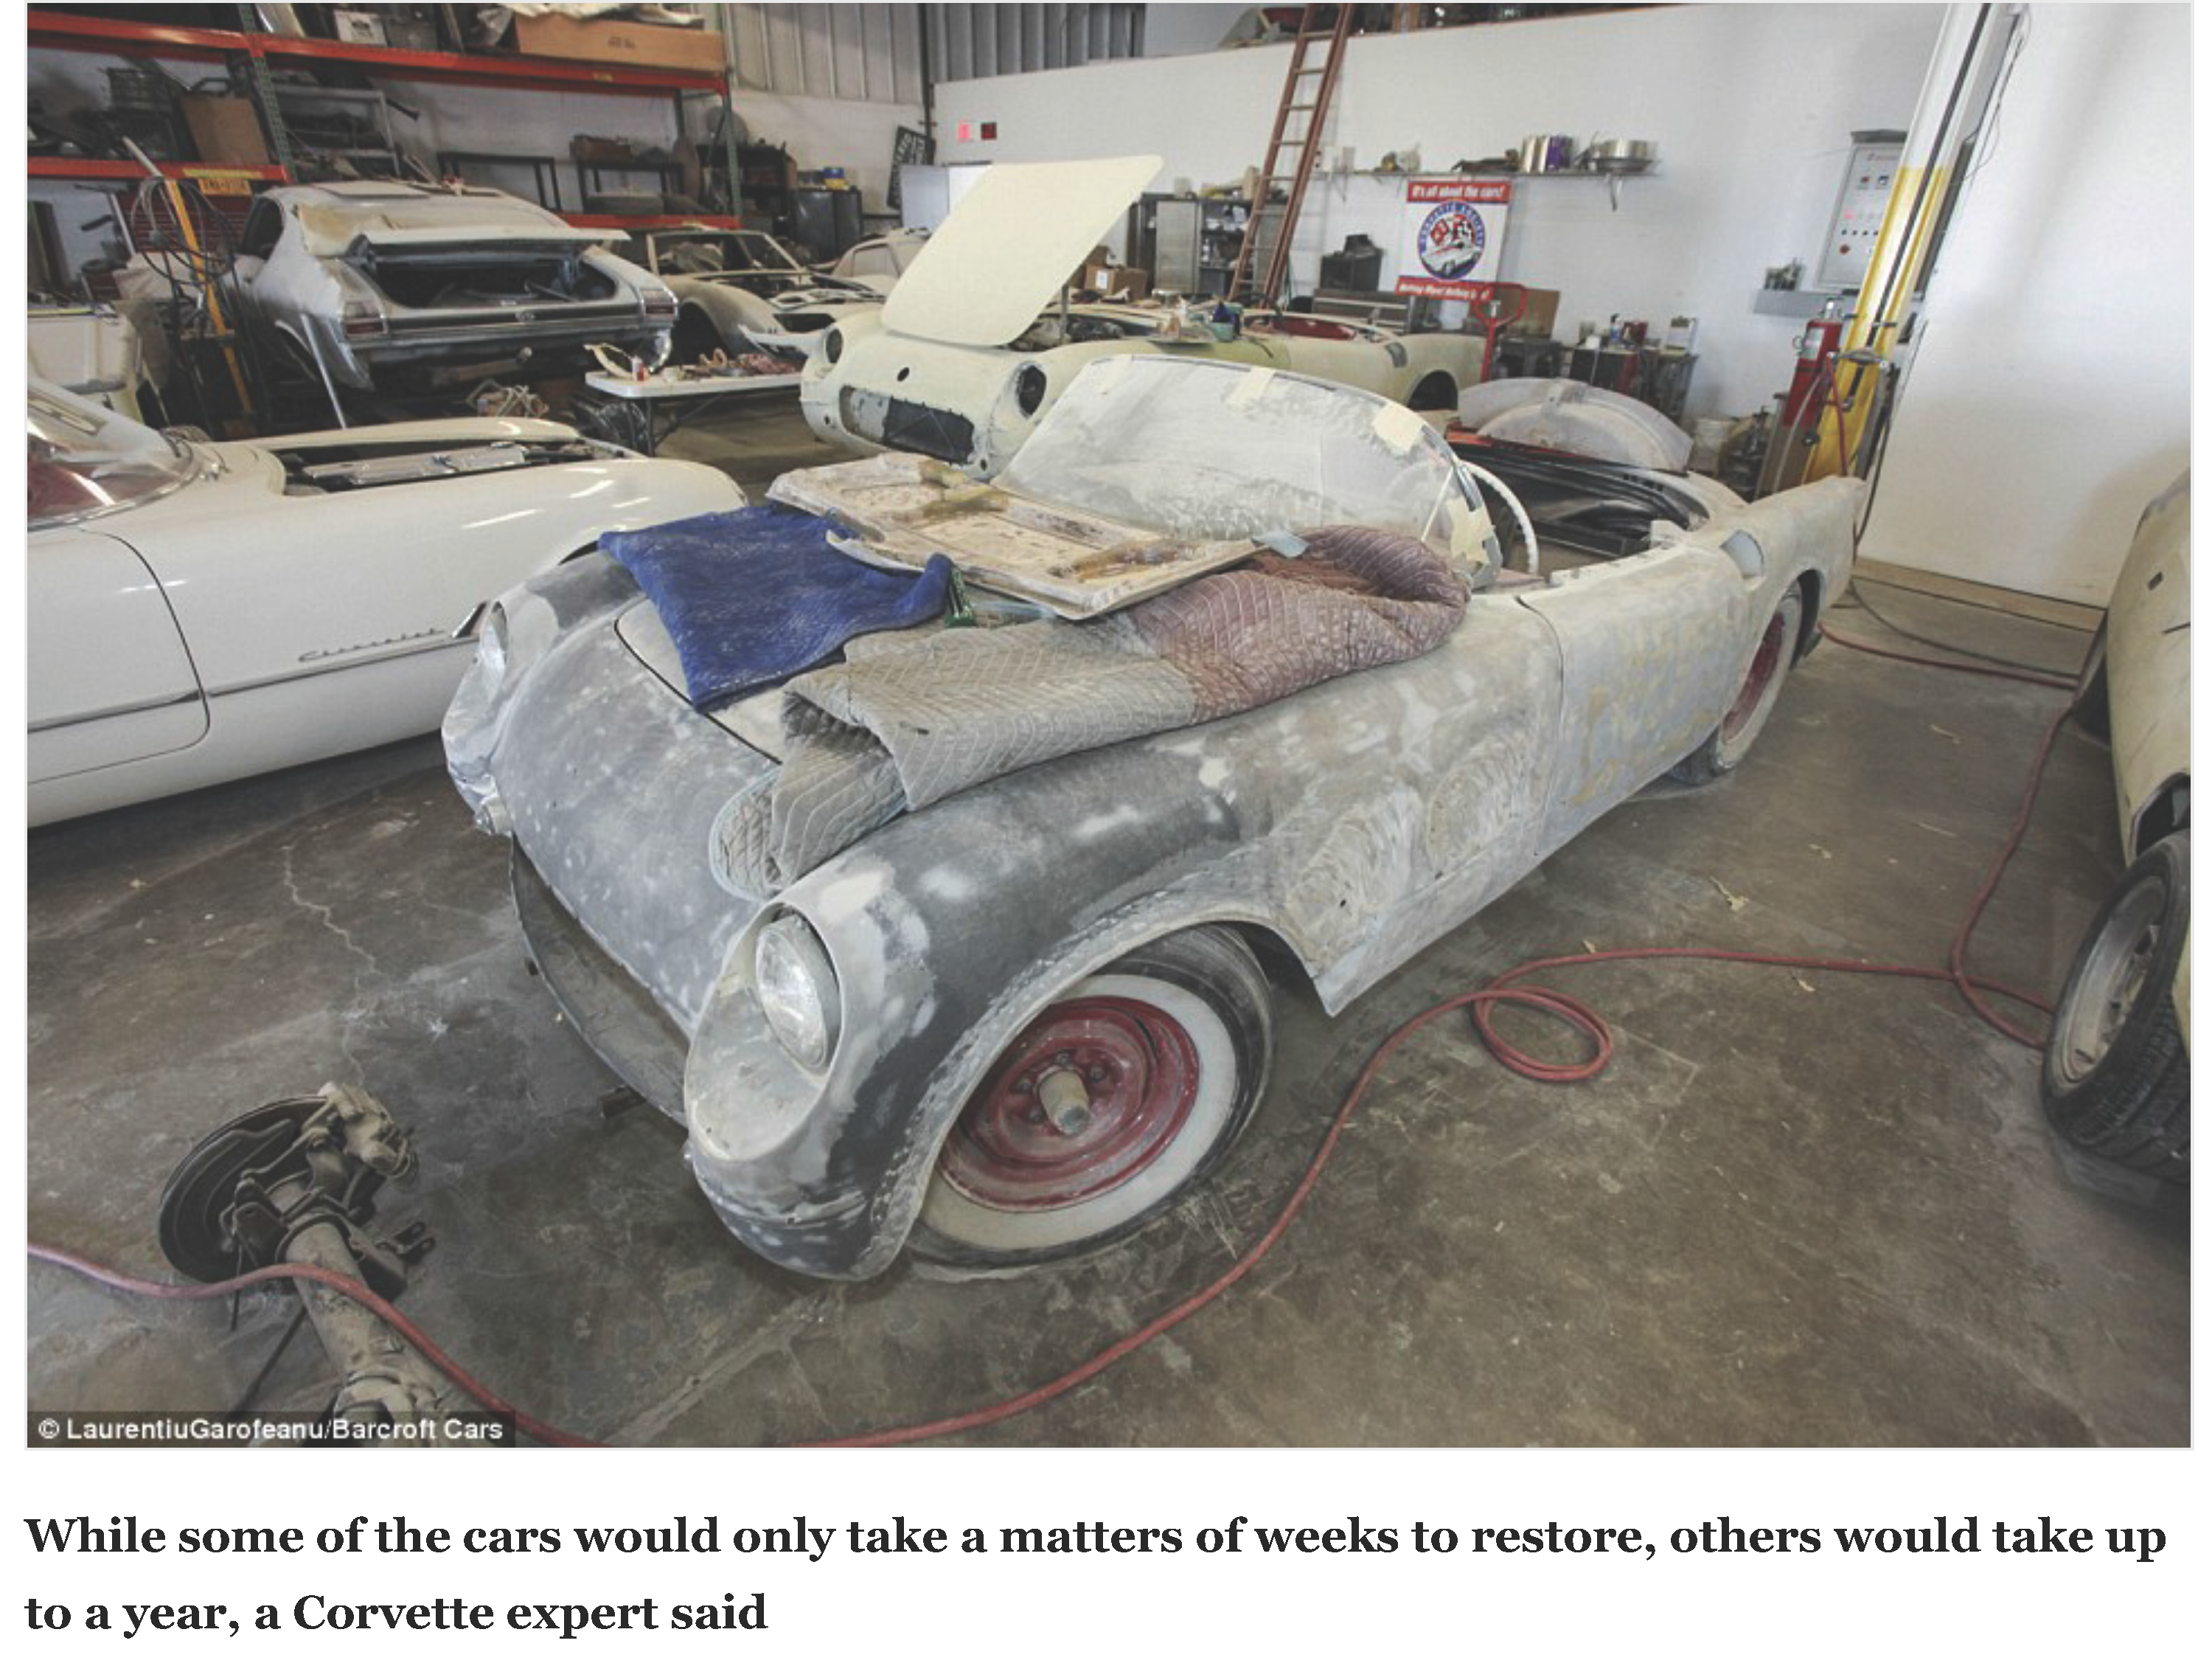 36 Corvettes are found collecting dust in a garage after 25 years | Daily Mail Online_Page_06